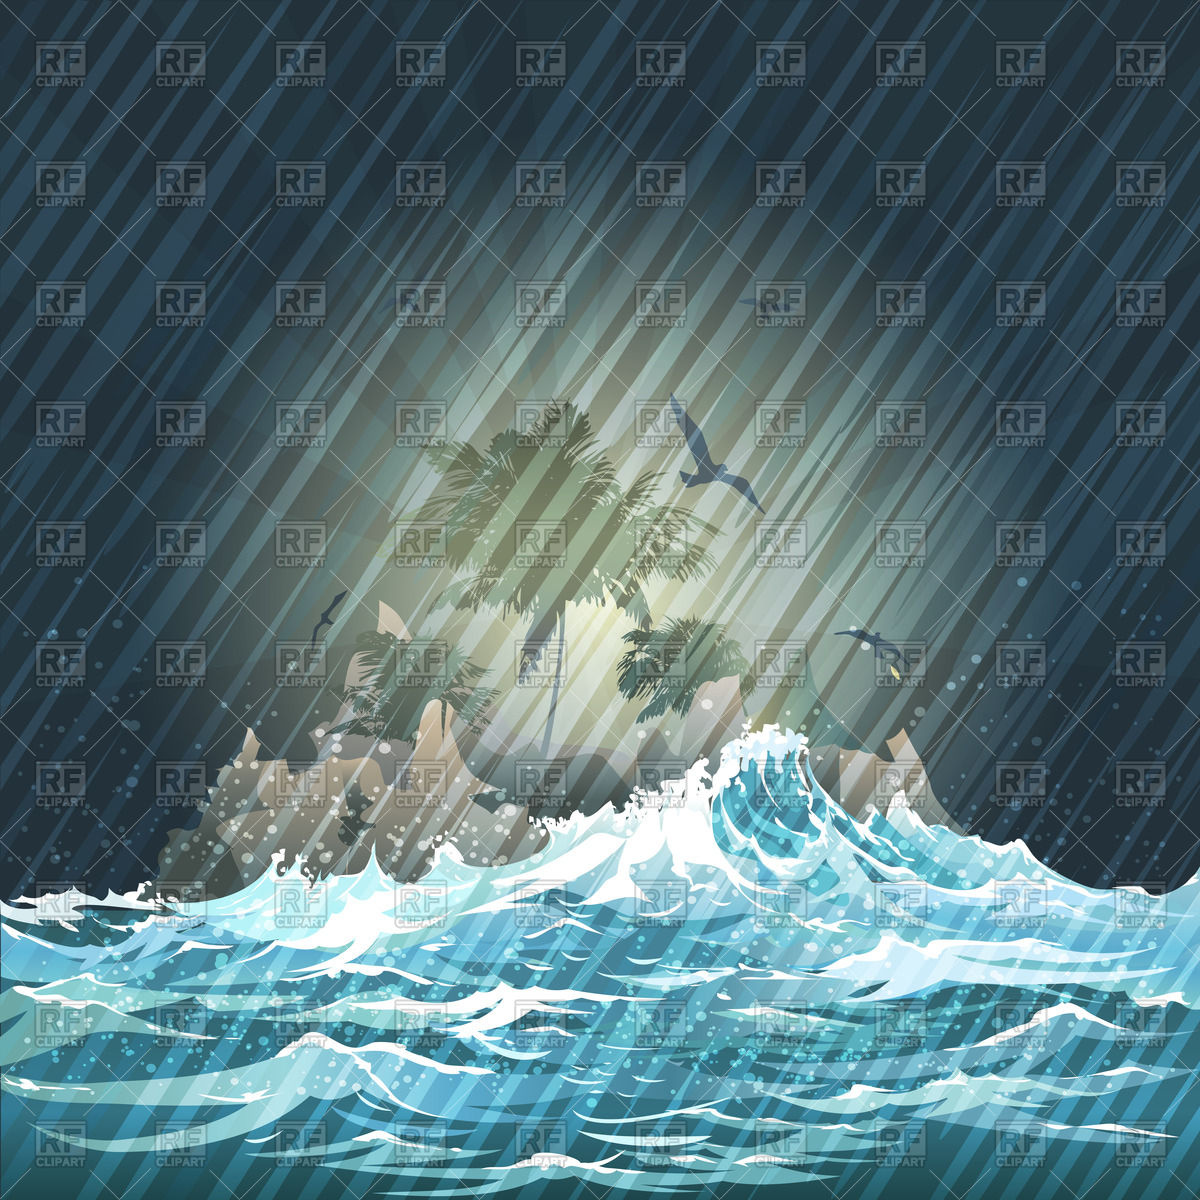 Island in storming ocean on night rainy sky Vector Image #63130.